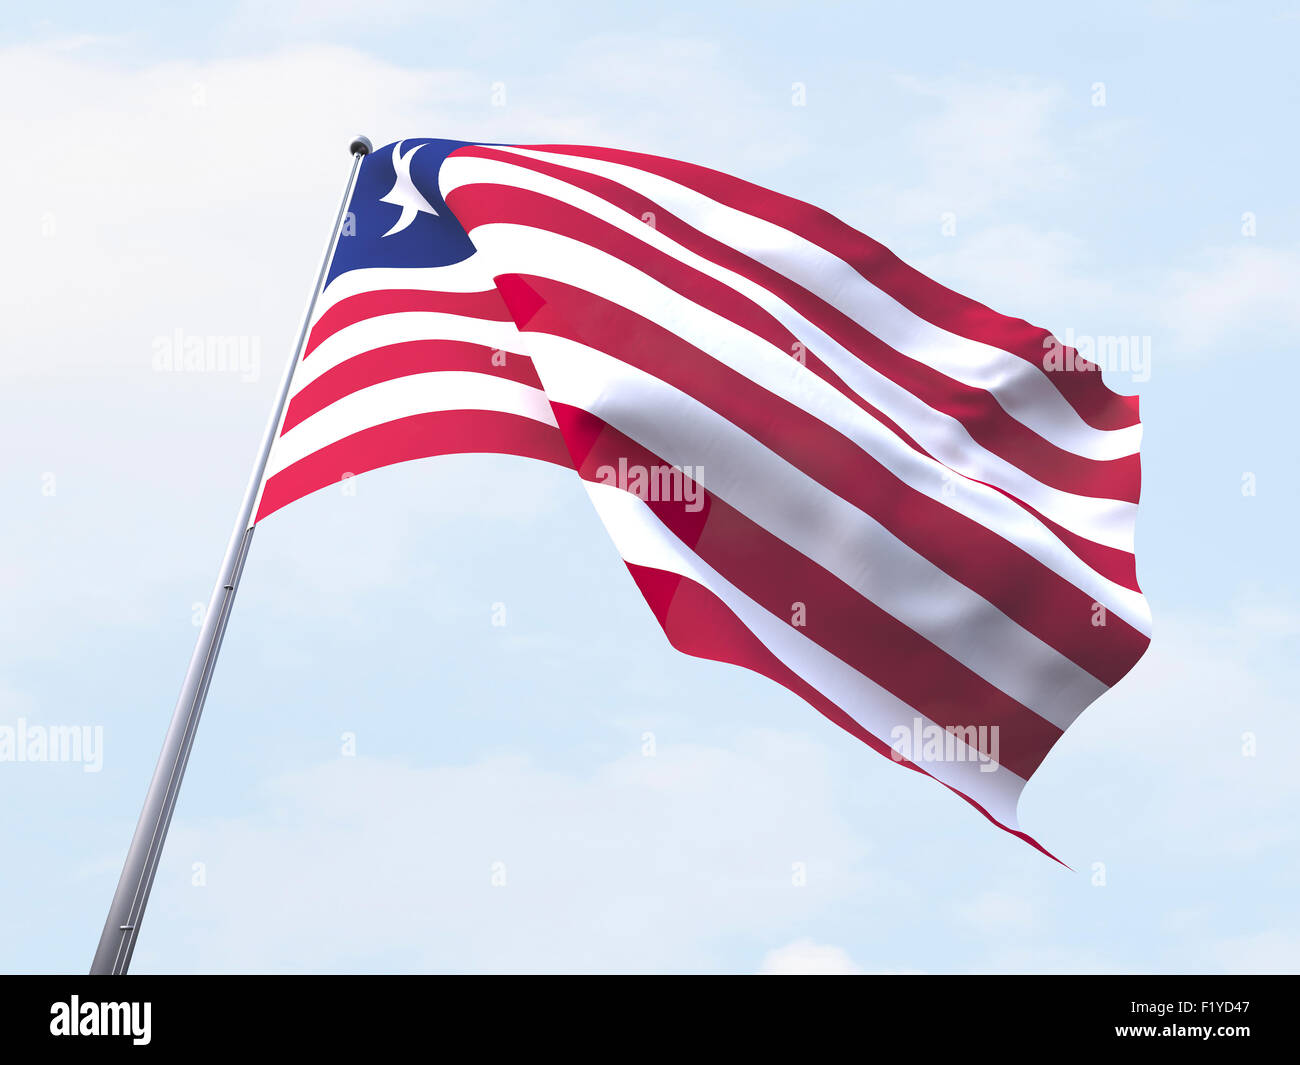 Liberia flag flying on clear sky. - Stock Image